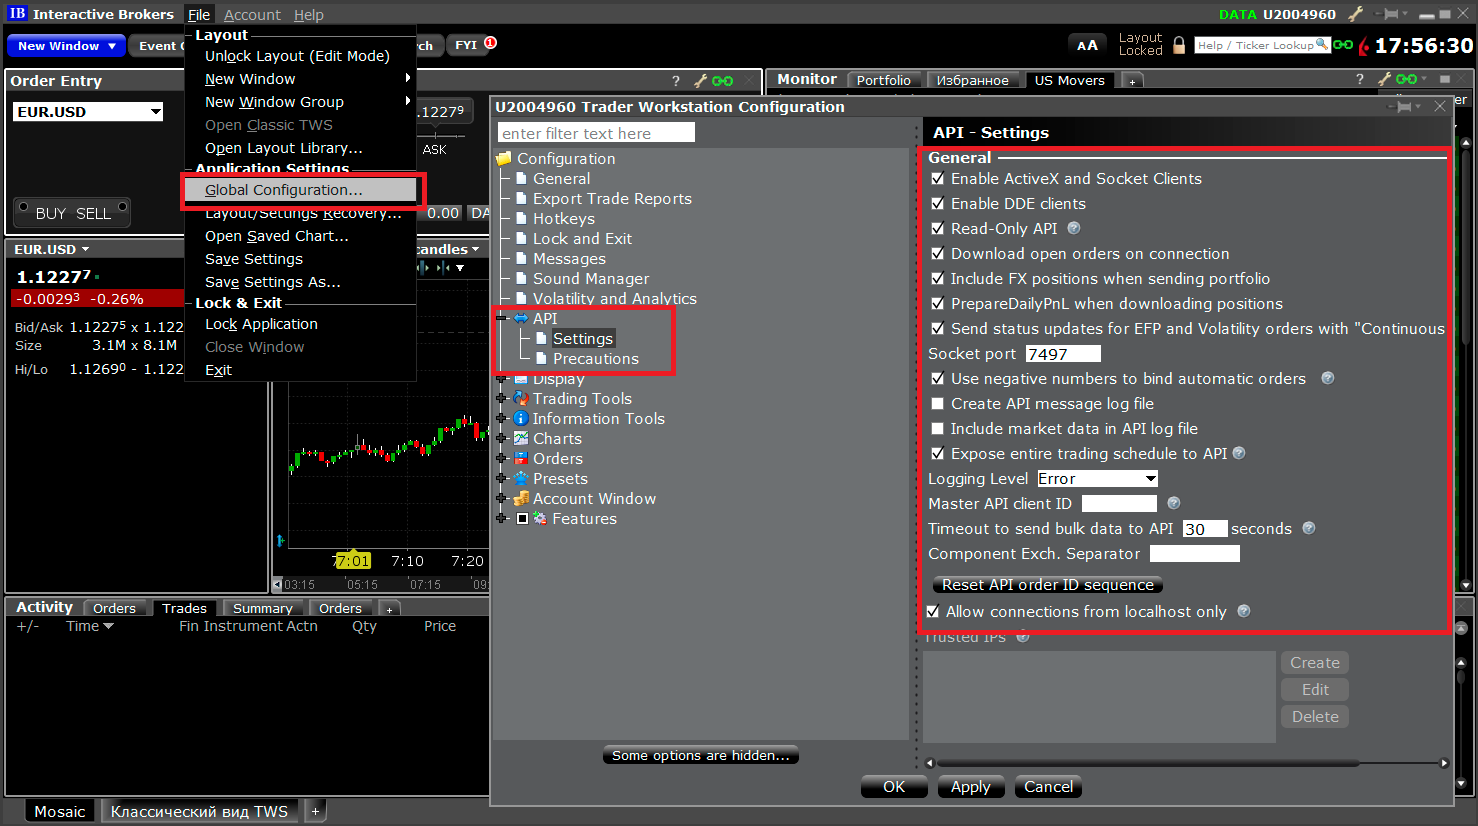 Interactive Brokers Trader Workstation